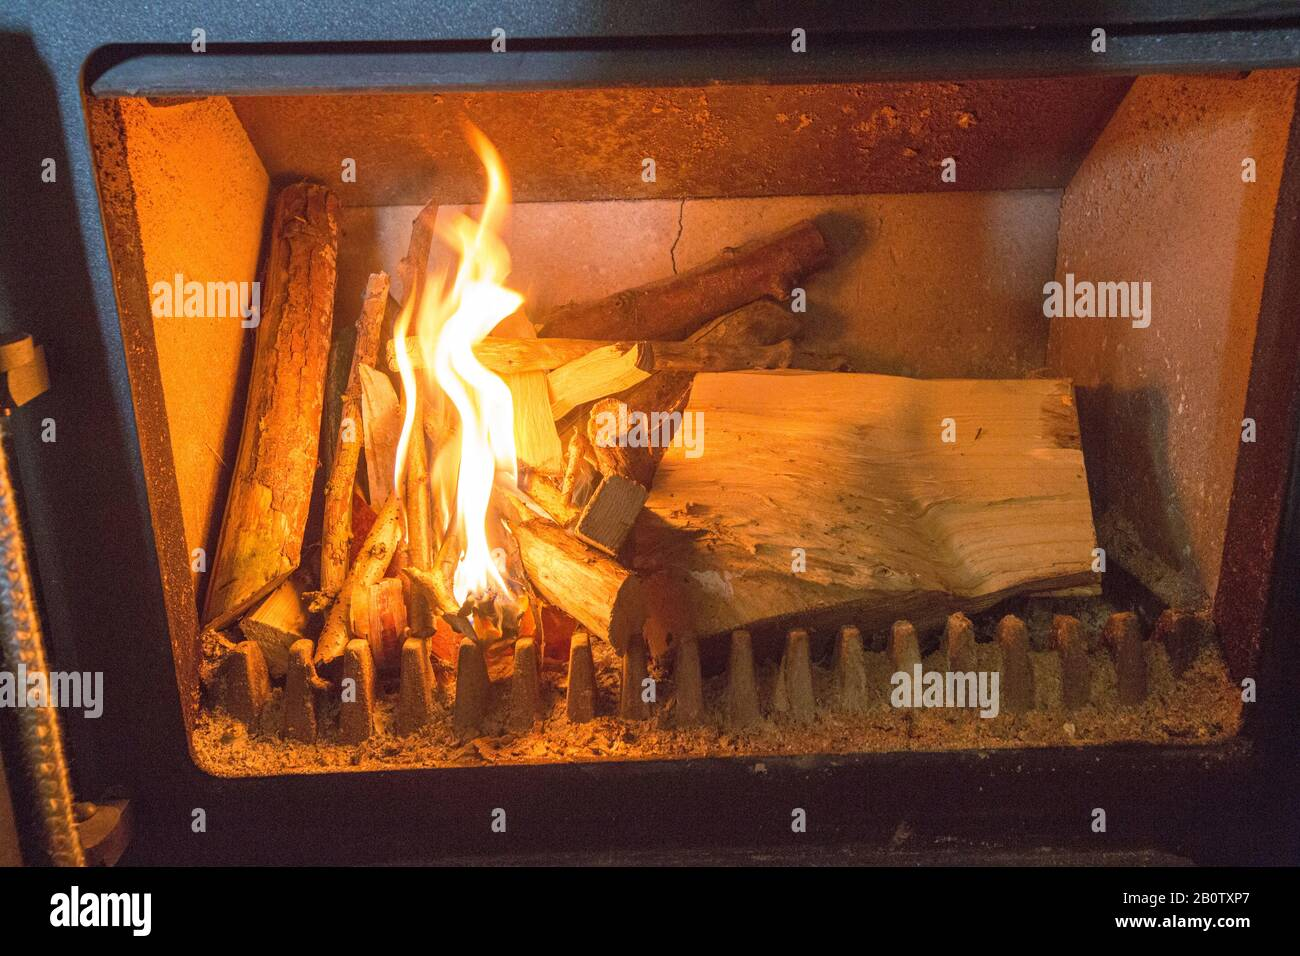 Piicture Shows Wood On Fire In A Wood Burning Stove Owners Of